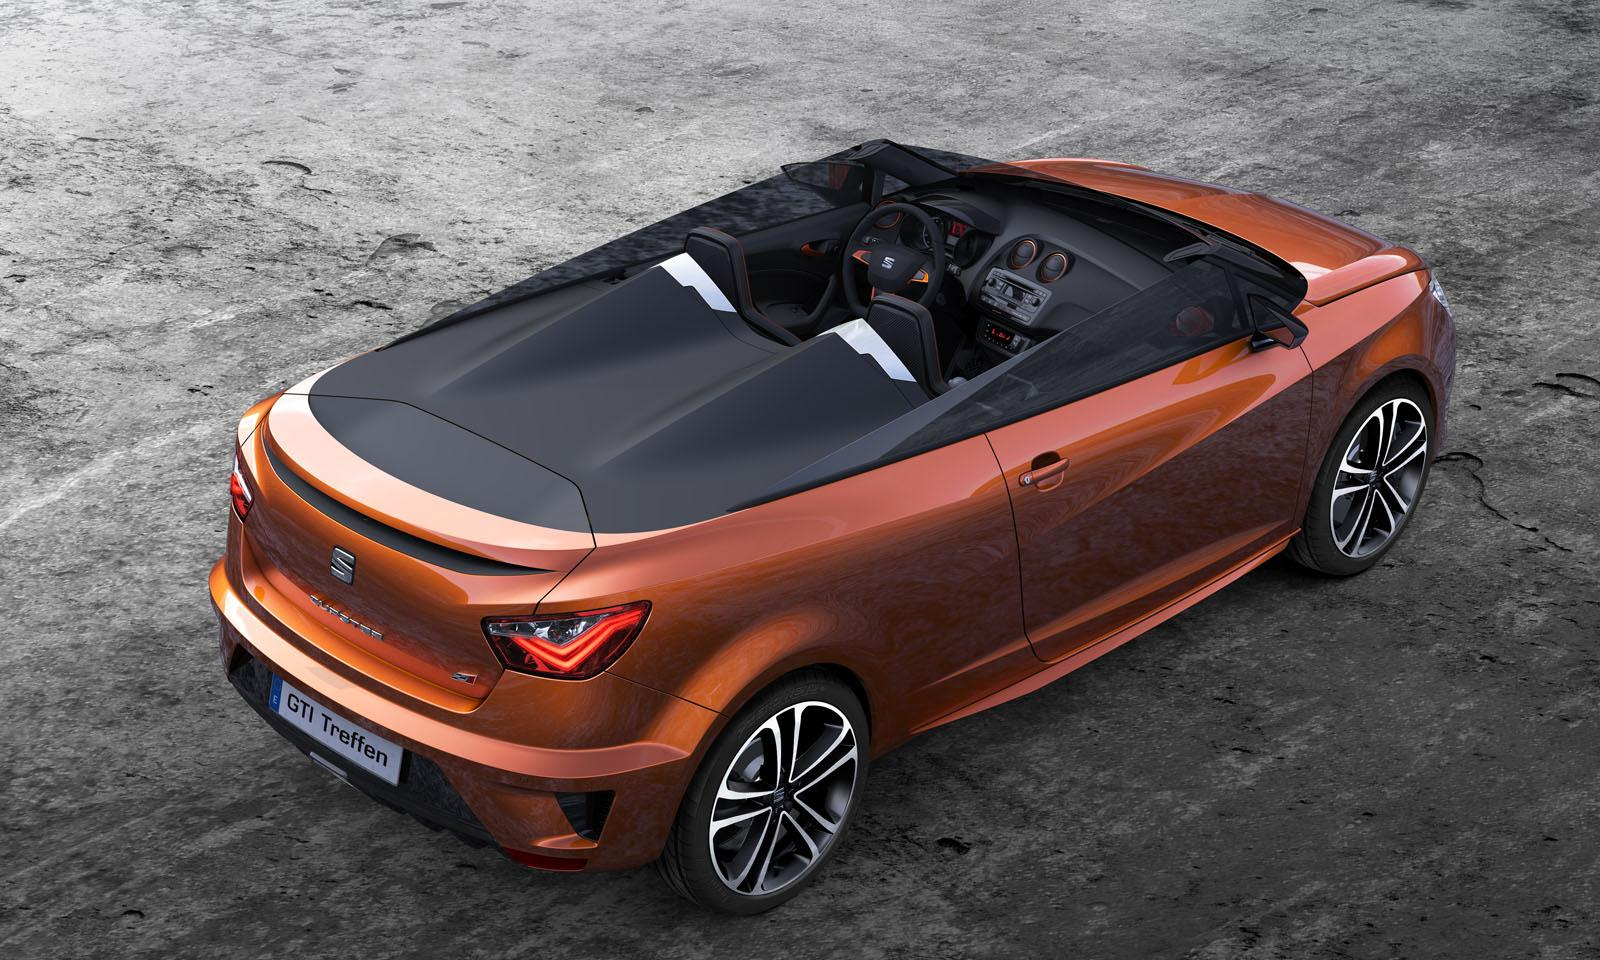 2018 Seat Ibiza Cupster Concept photo - 5